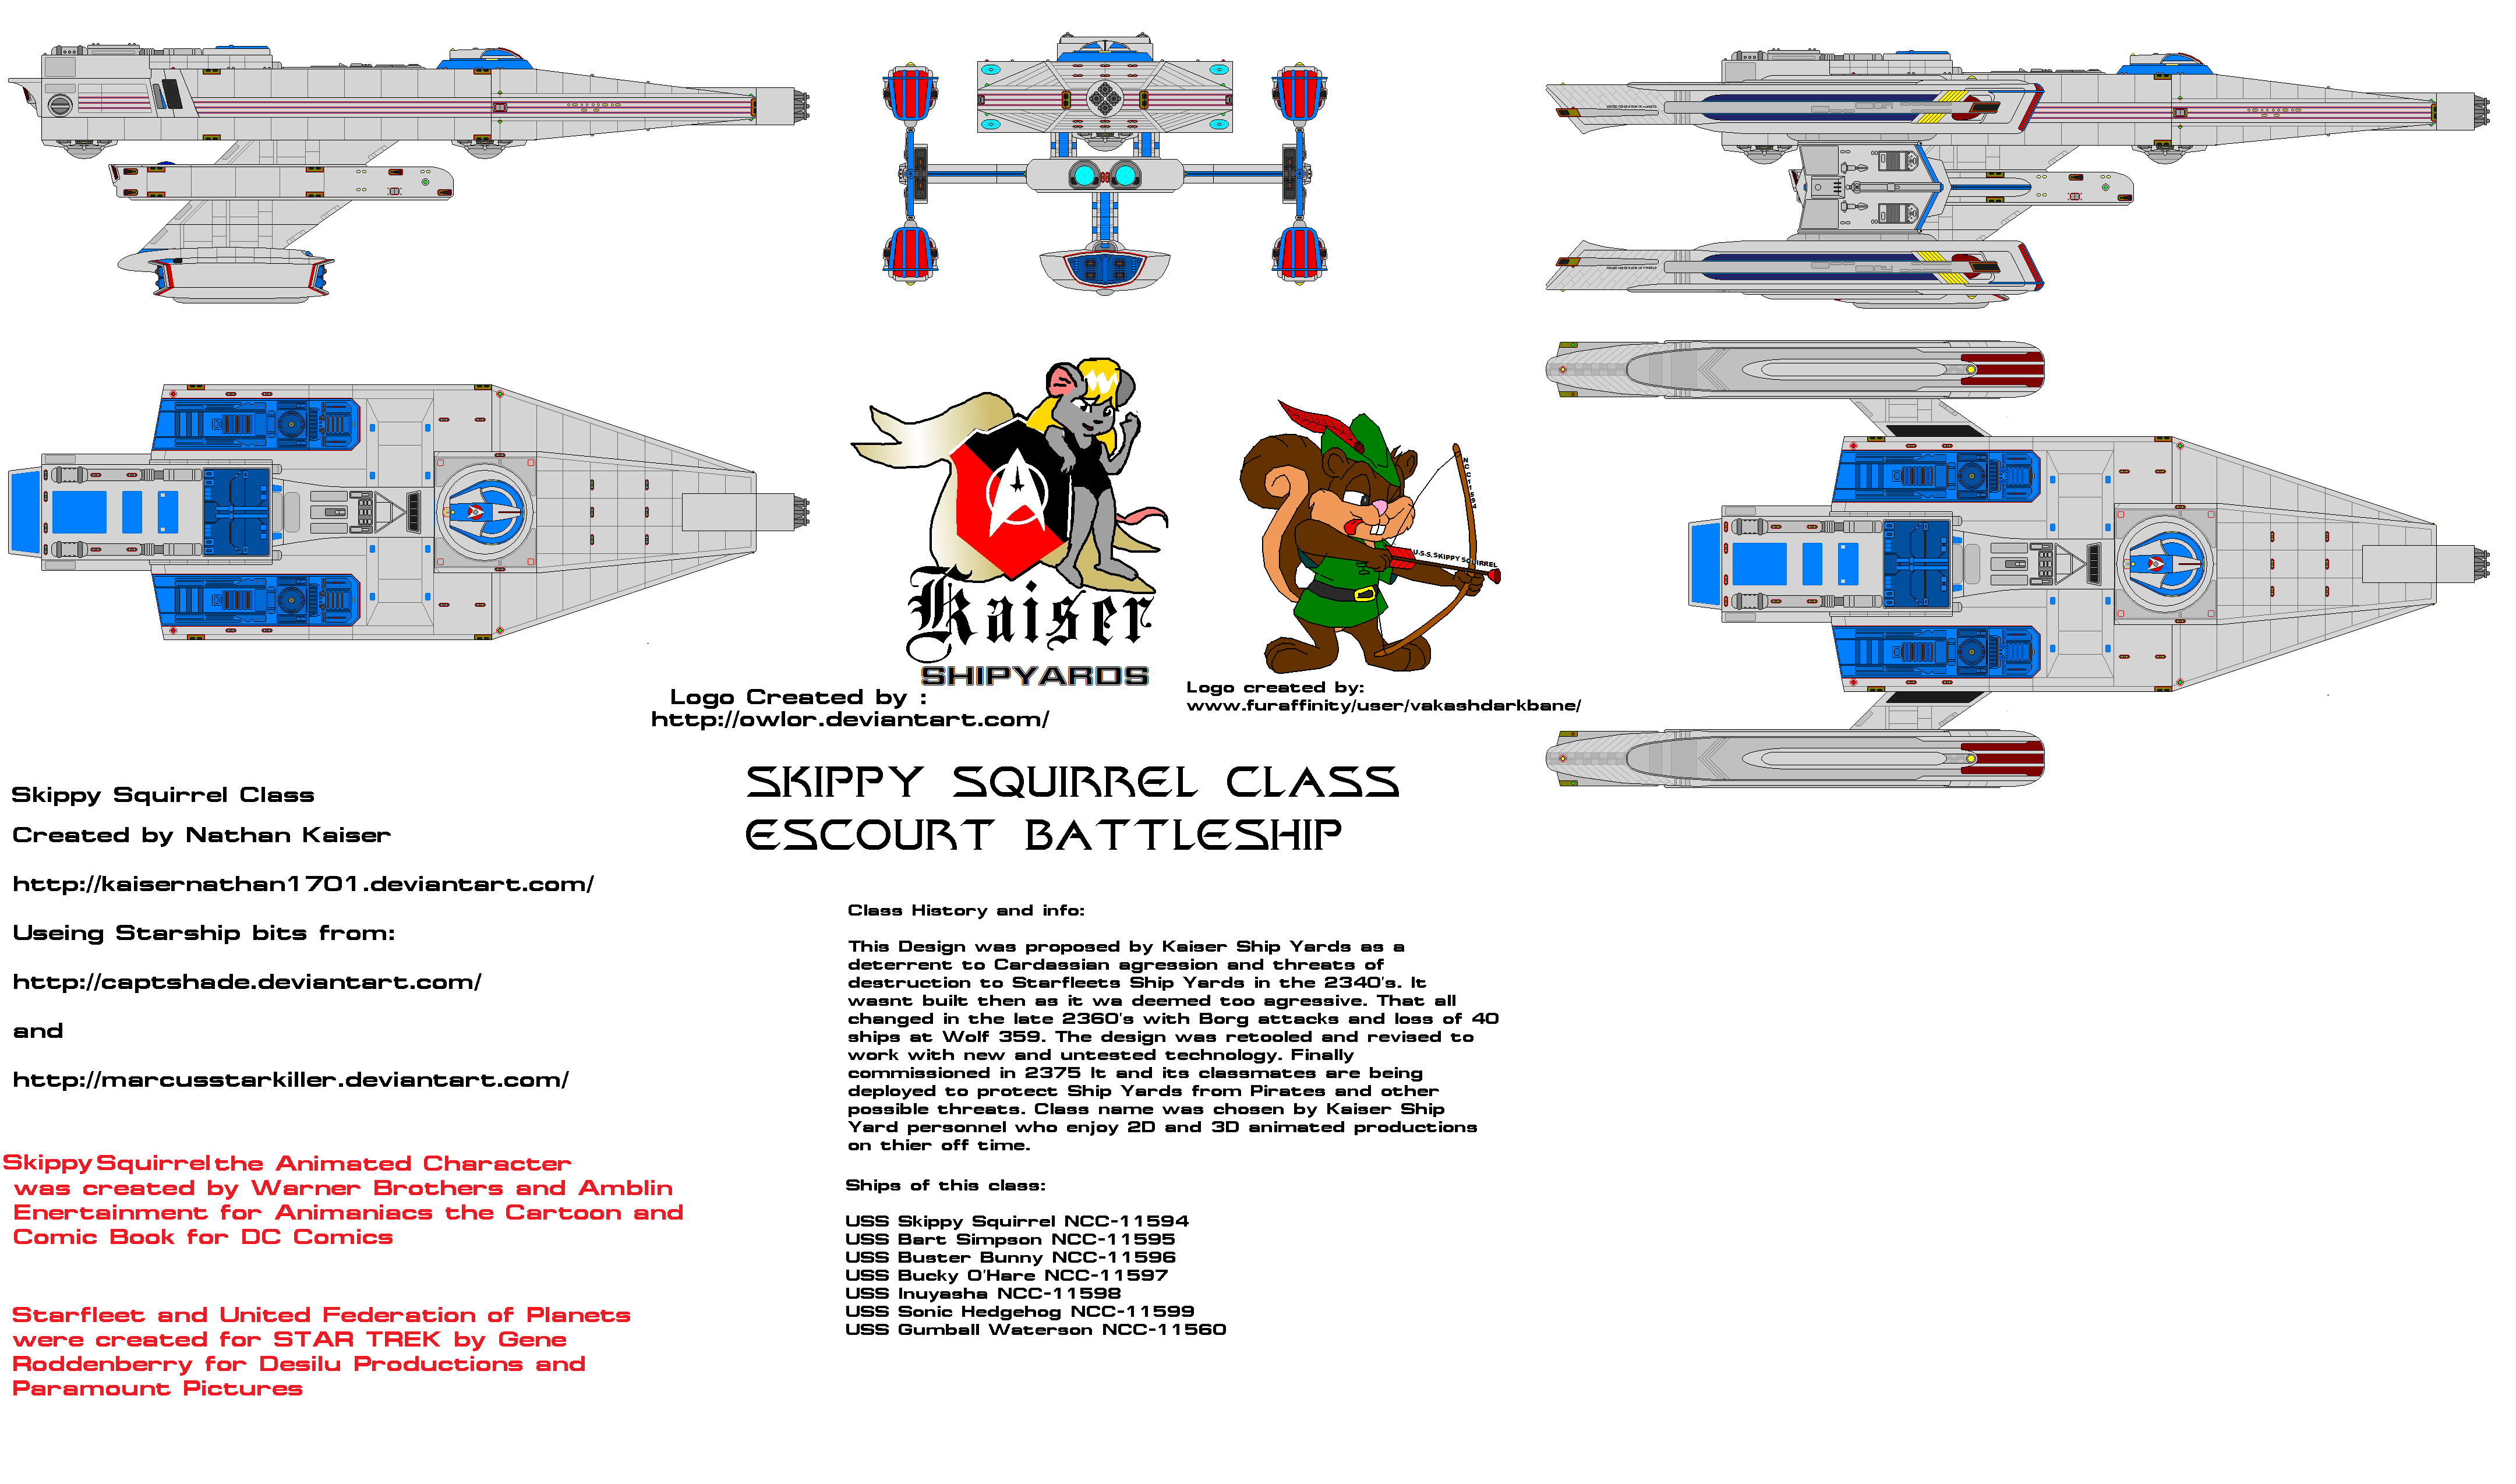 Skippy Squirrel Class (With updated Info)